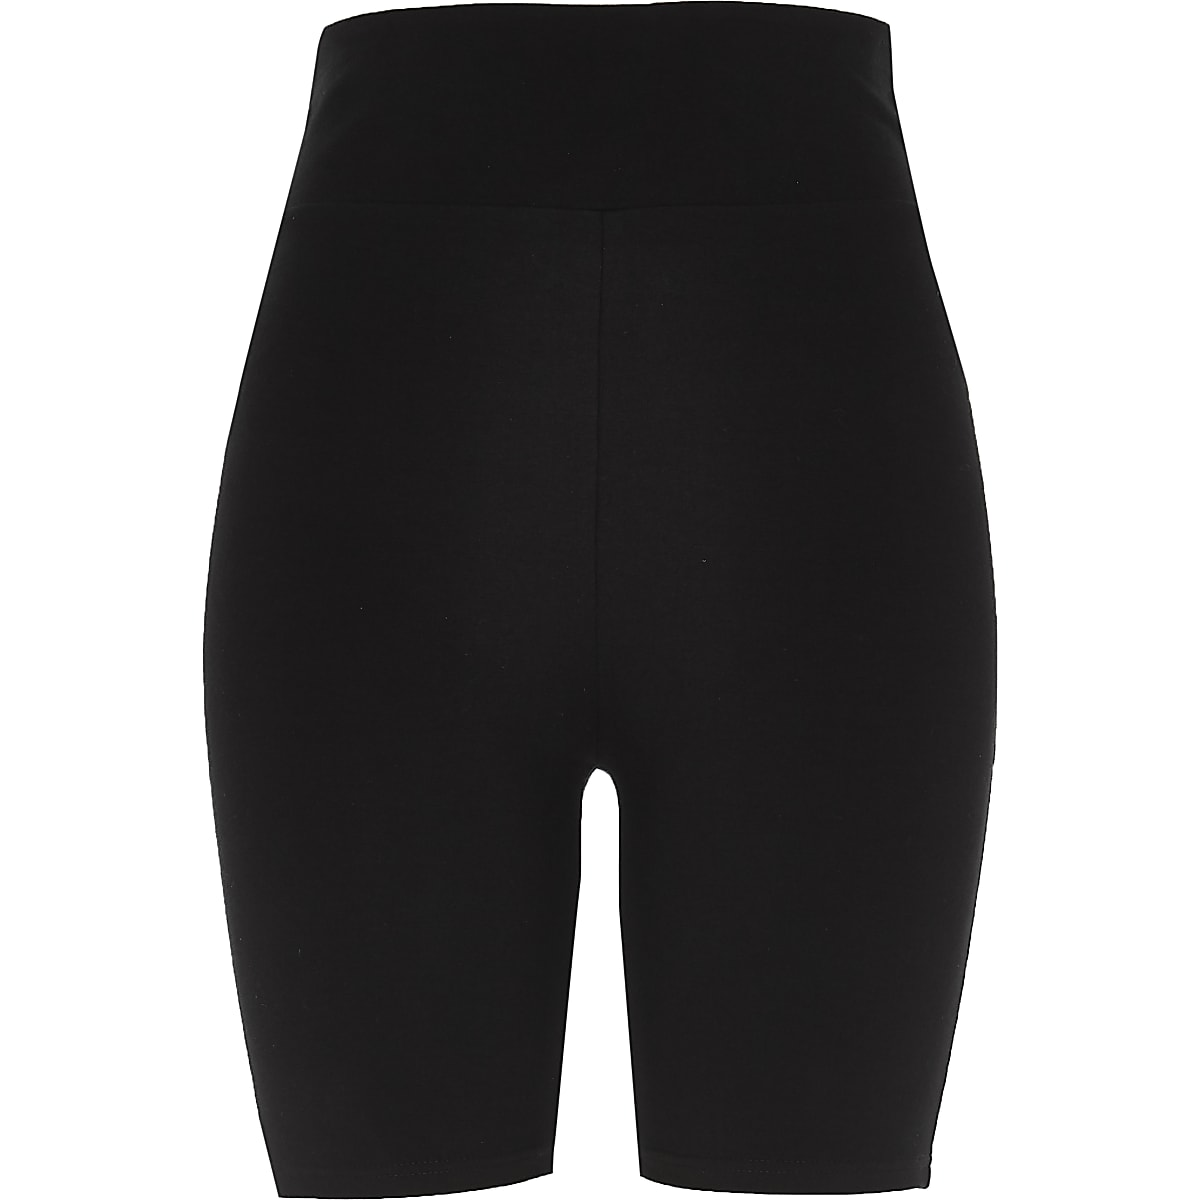 9fcf2725a2 Black high waisted cycling shorts - Casual Shorts - Shorts - women